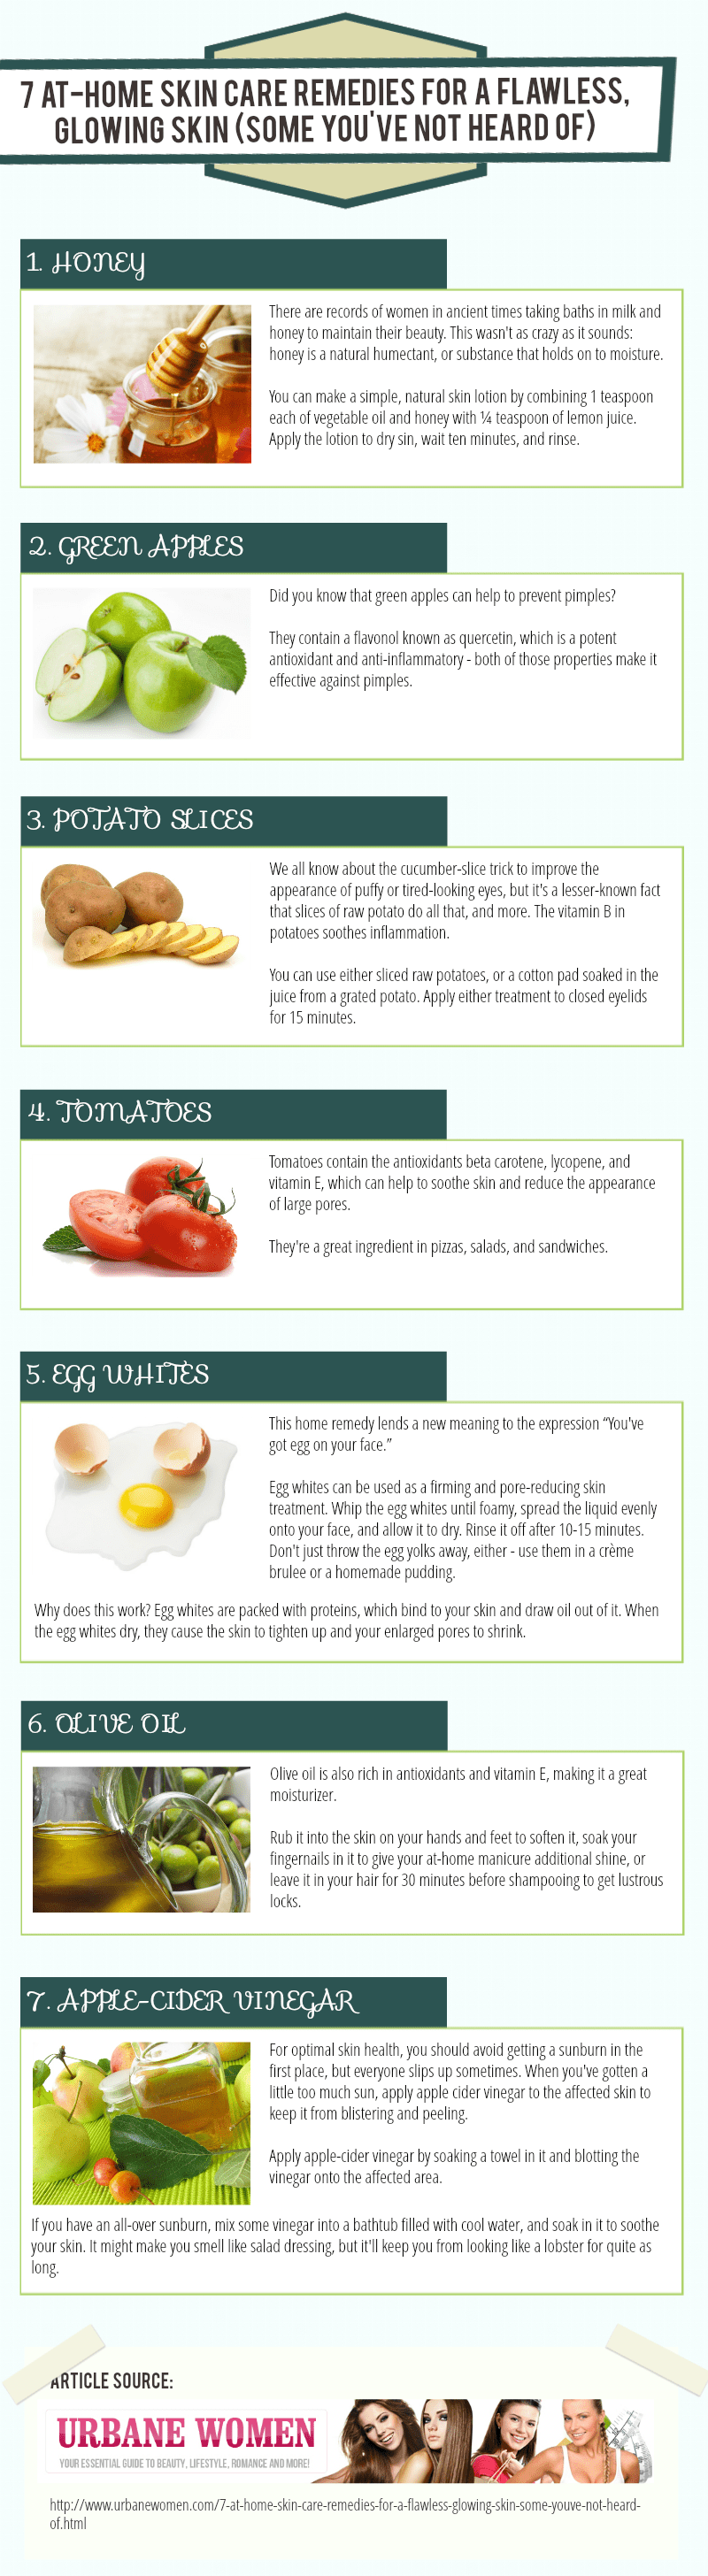 At-Home Skin Care Remedies